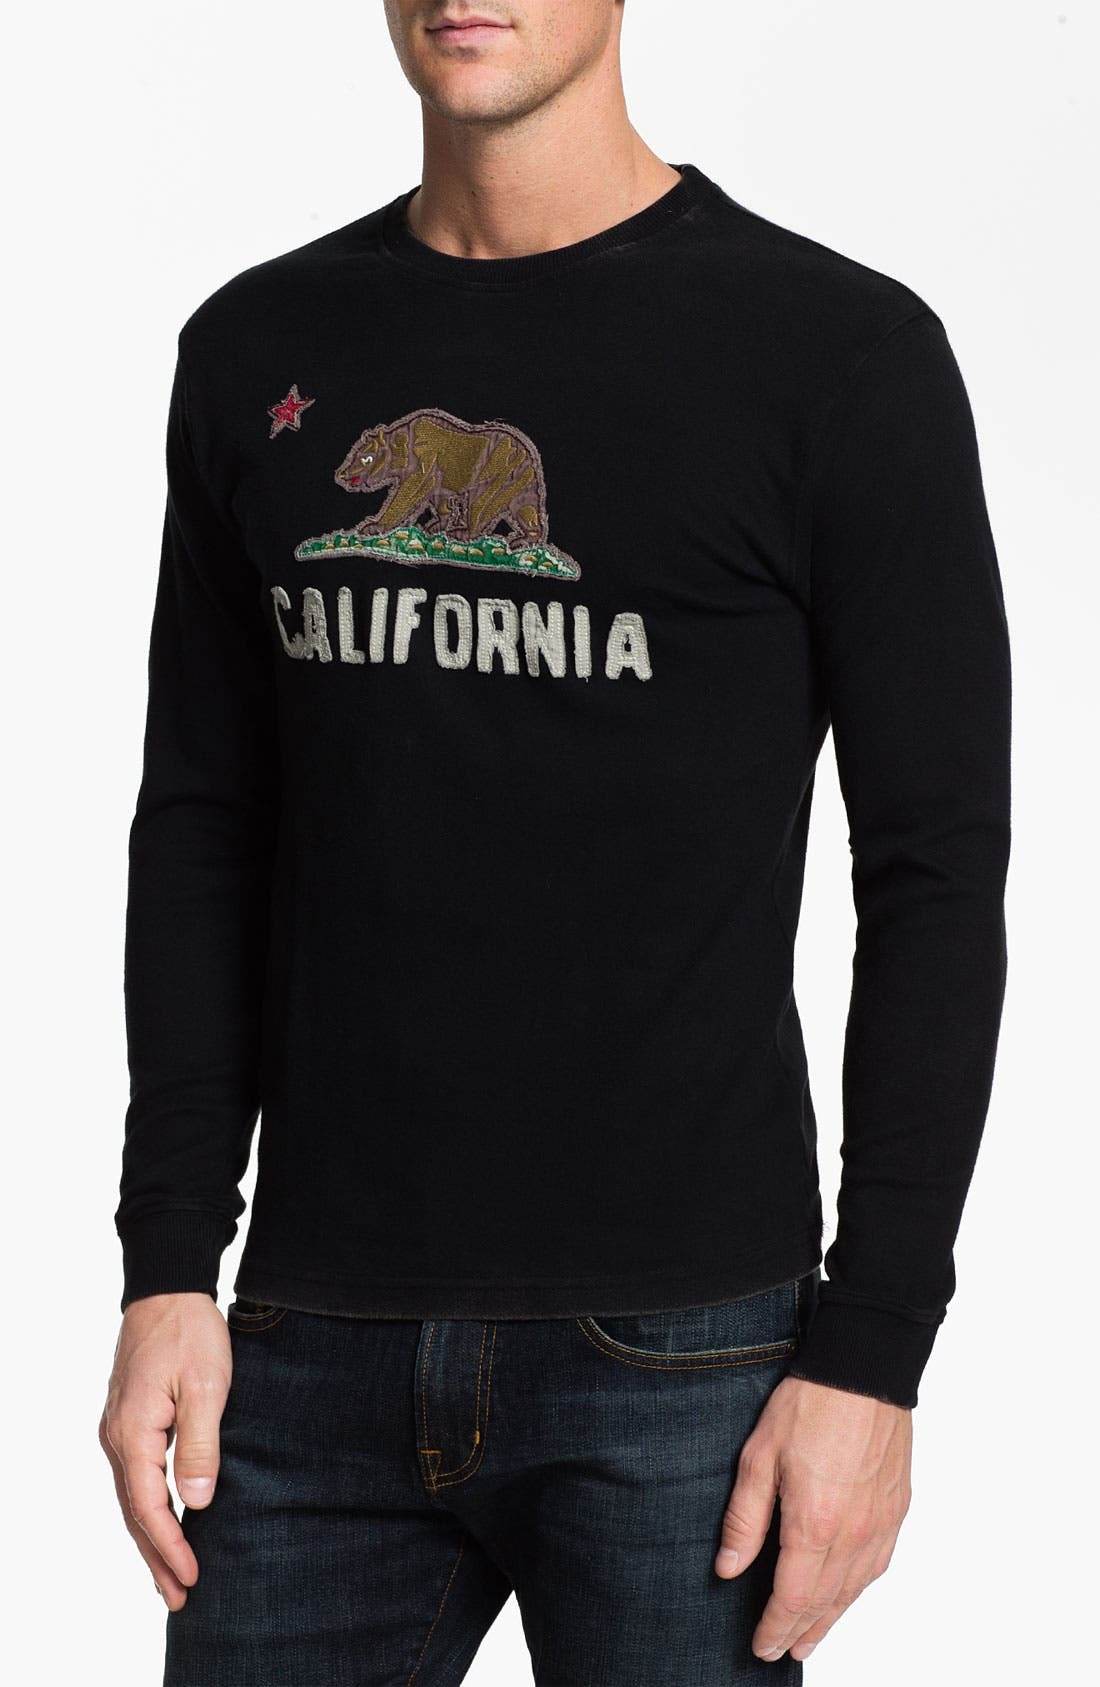 Alternate Image 1 Selected - Red Jacket 'California - Team City' Long Sleeve T-Shirt